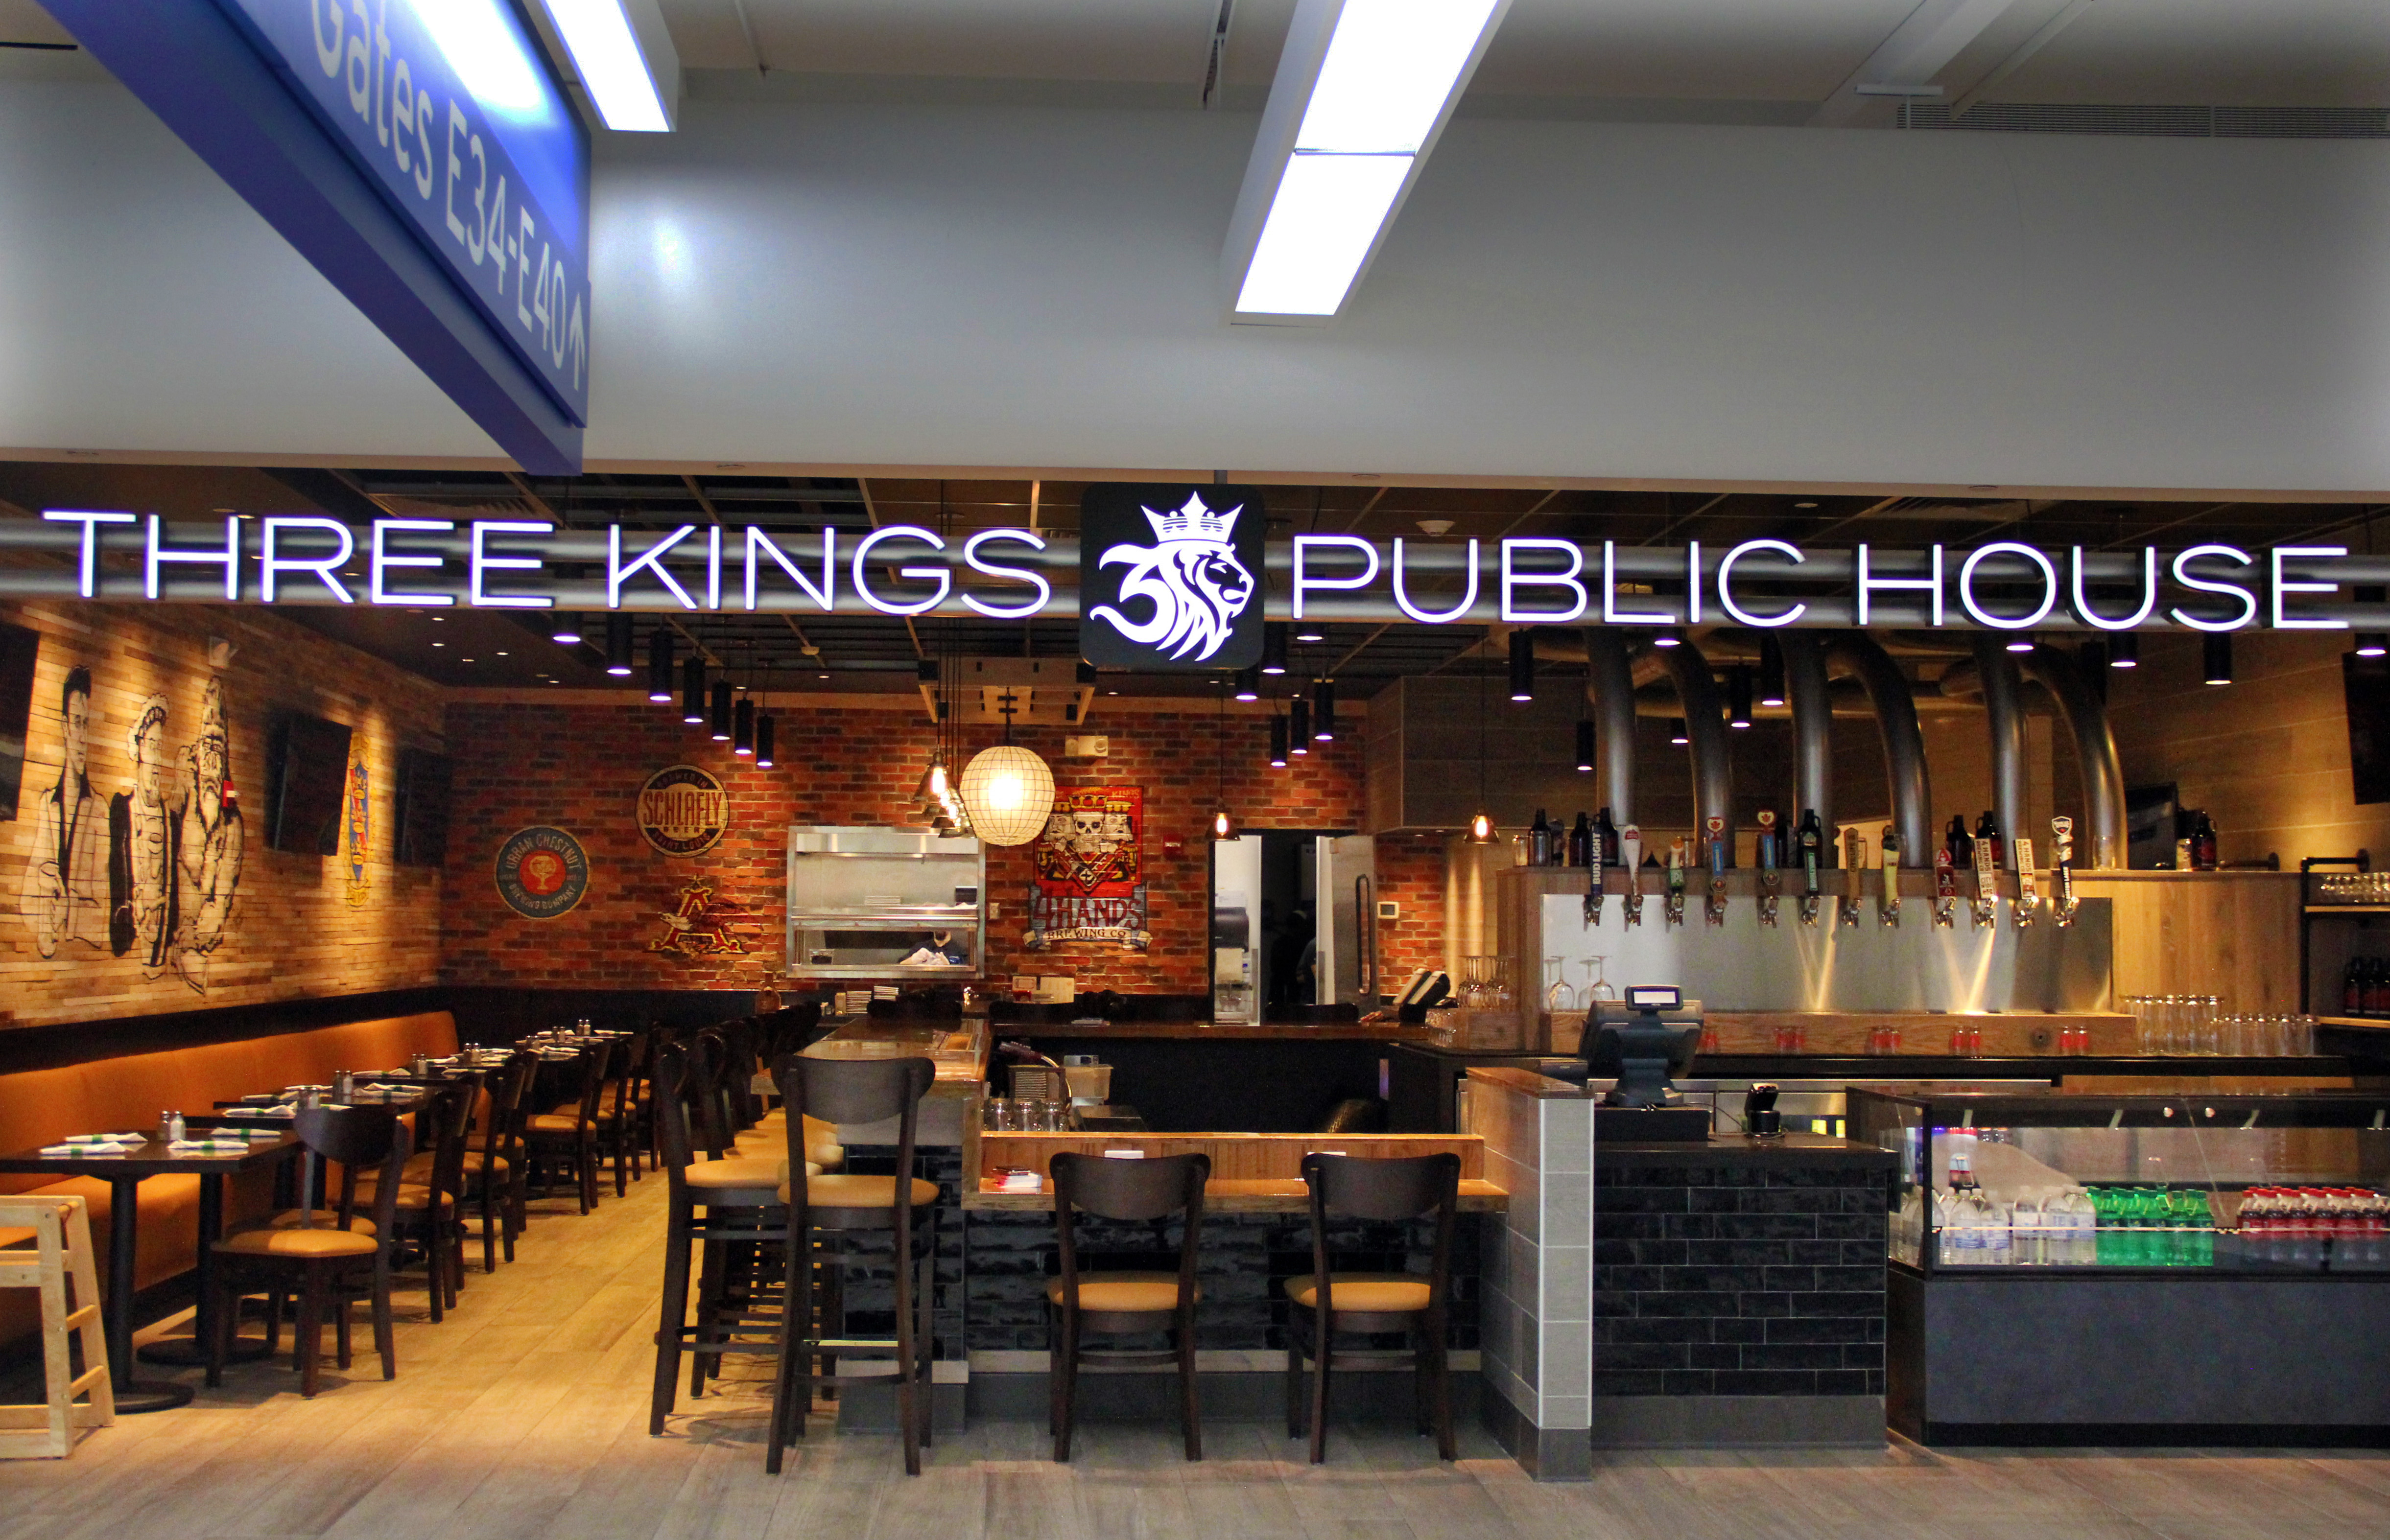 Three Kings Public House